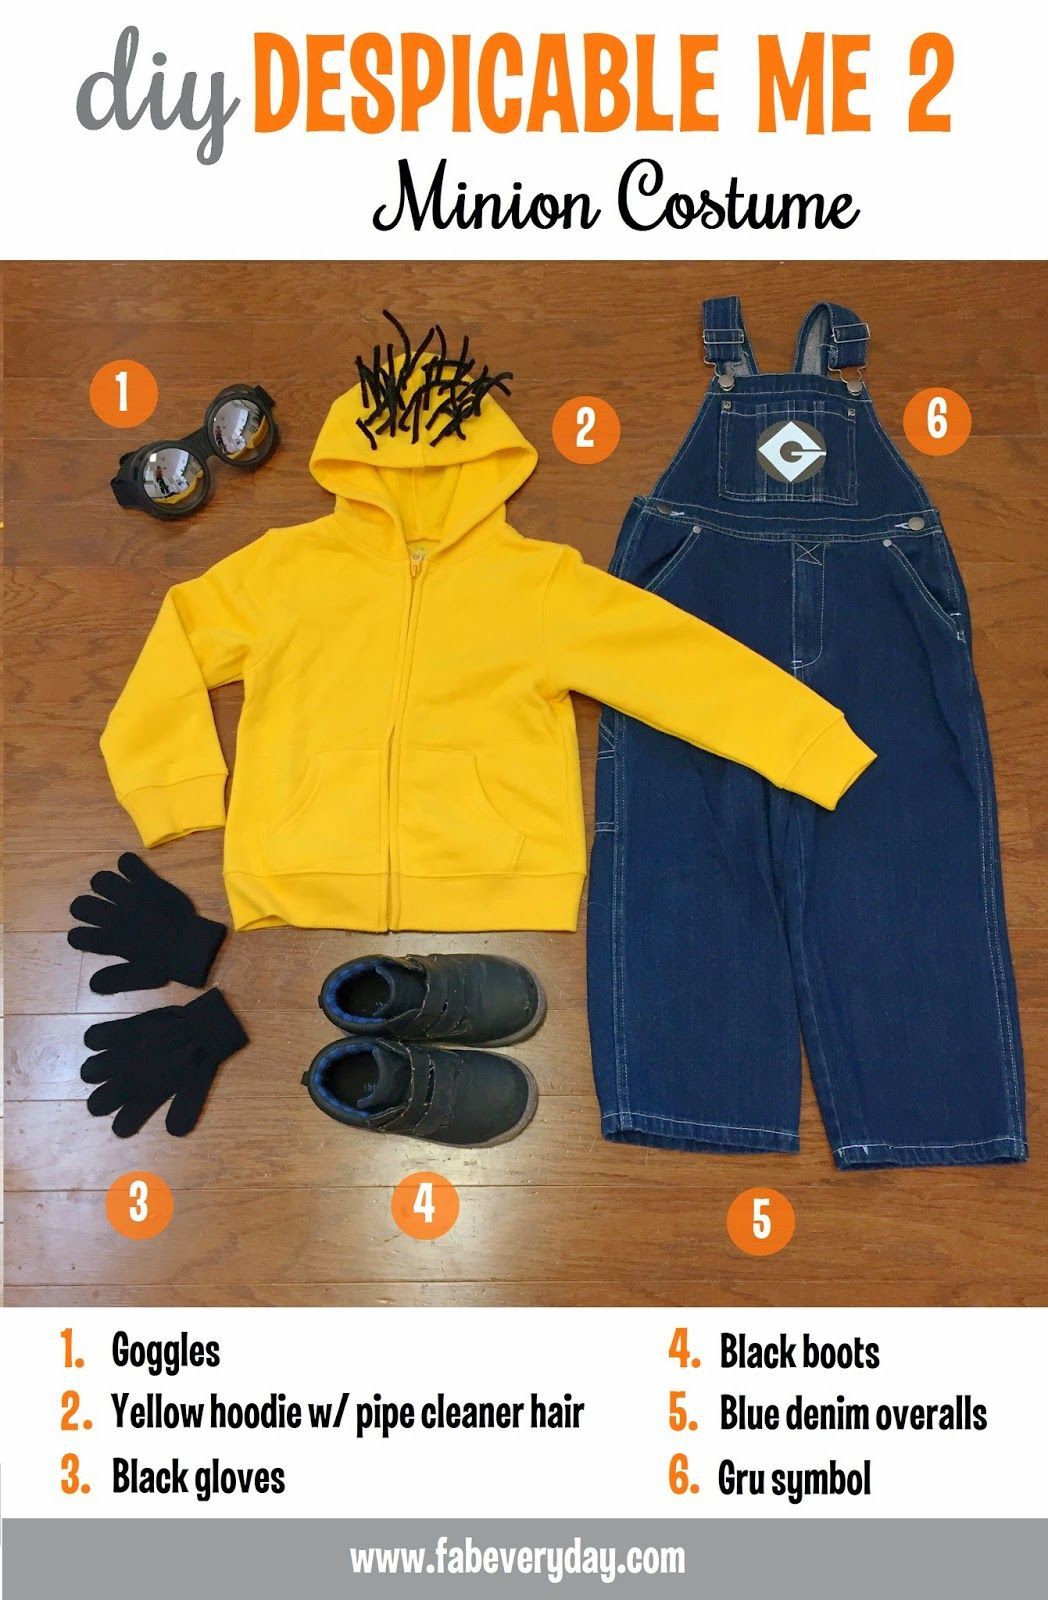 DIY Despicable Me 2 Halloween Costumes  sc 1 st  Pinterest & DIY Despicable Me 2 Halloween Costumes | Google Costumes and ...